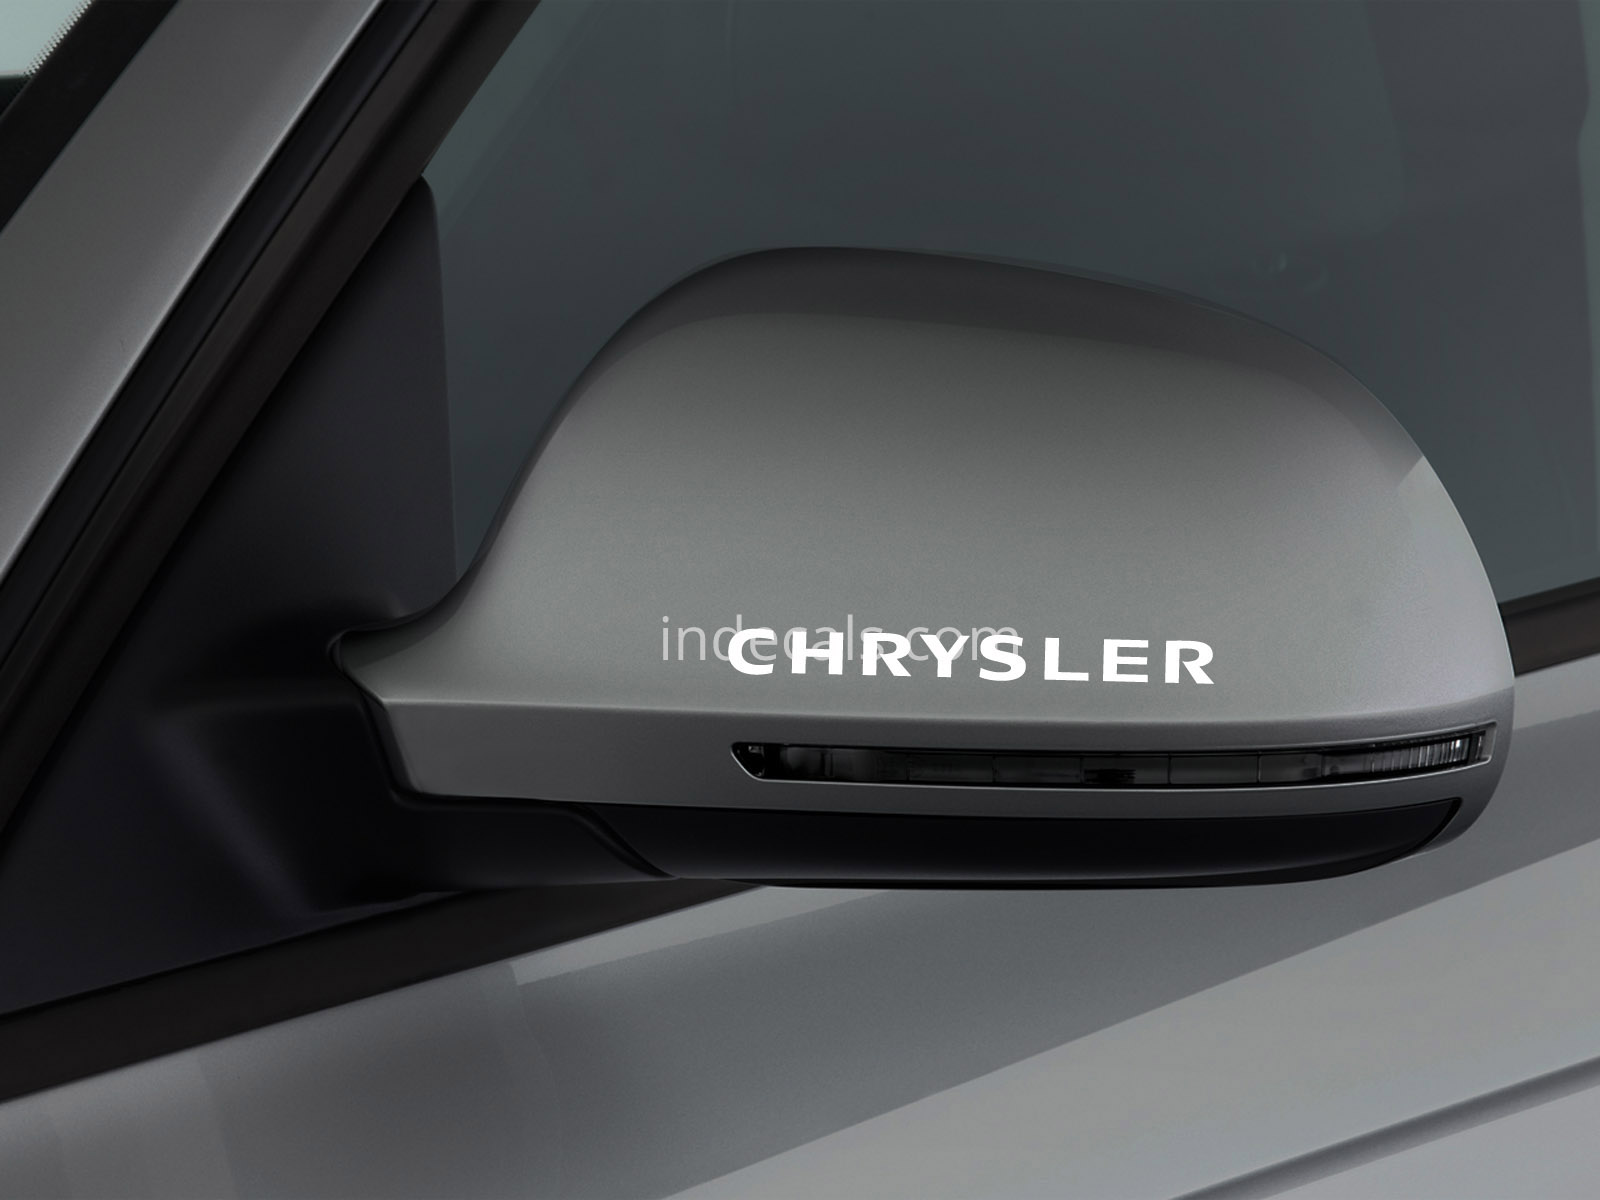 3 x Chrysler Stickers for Mirror - White